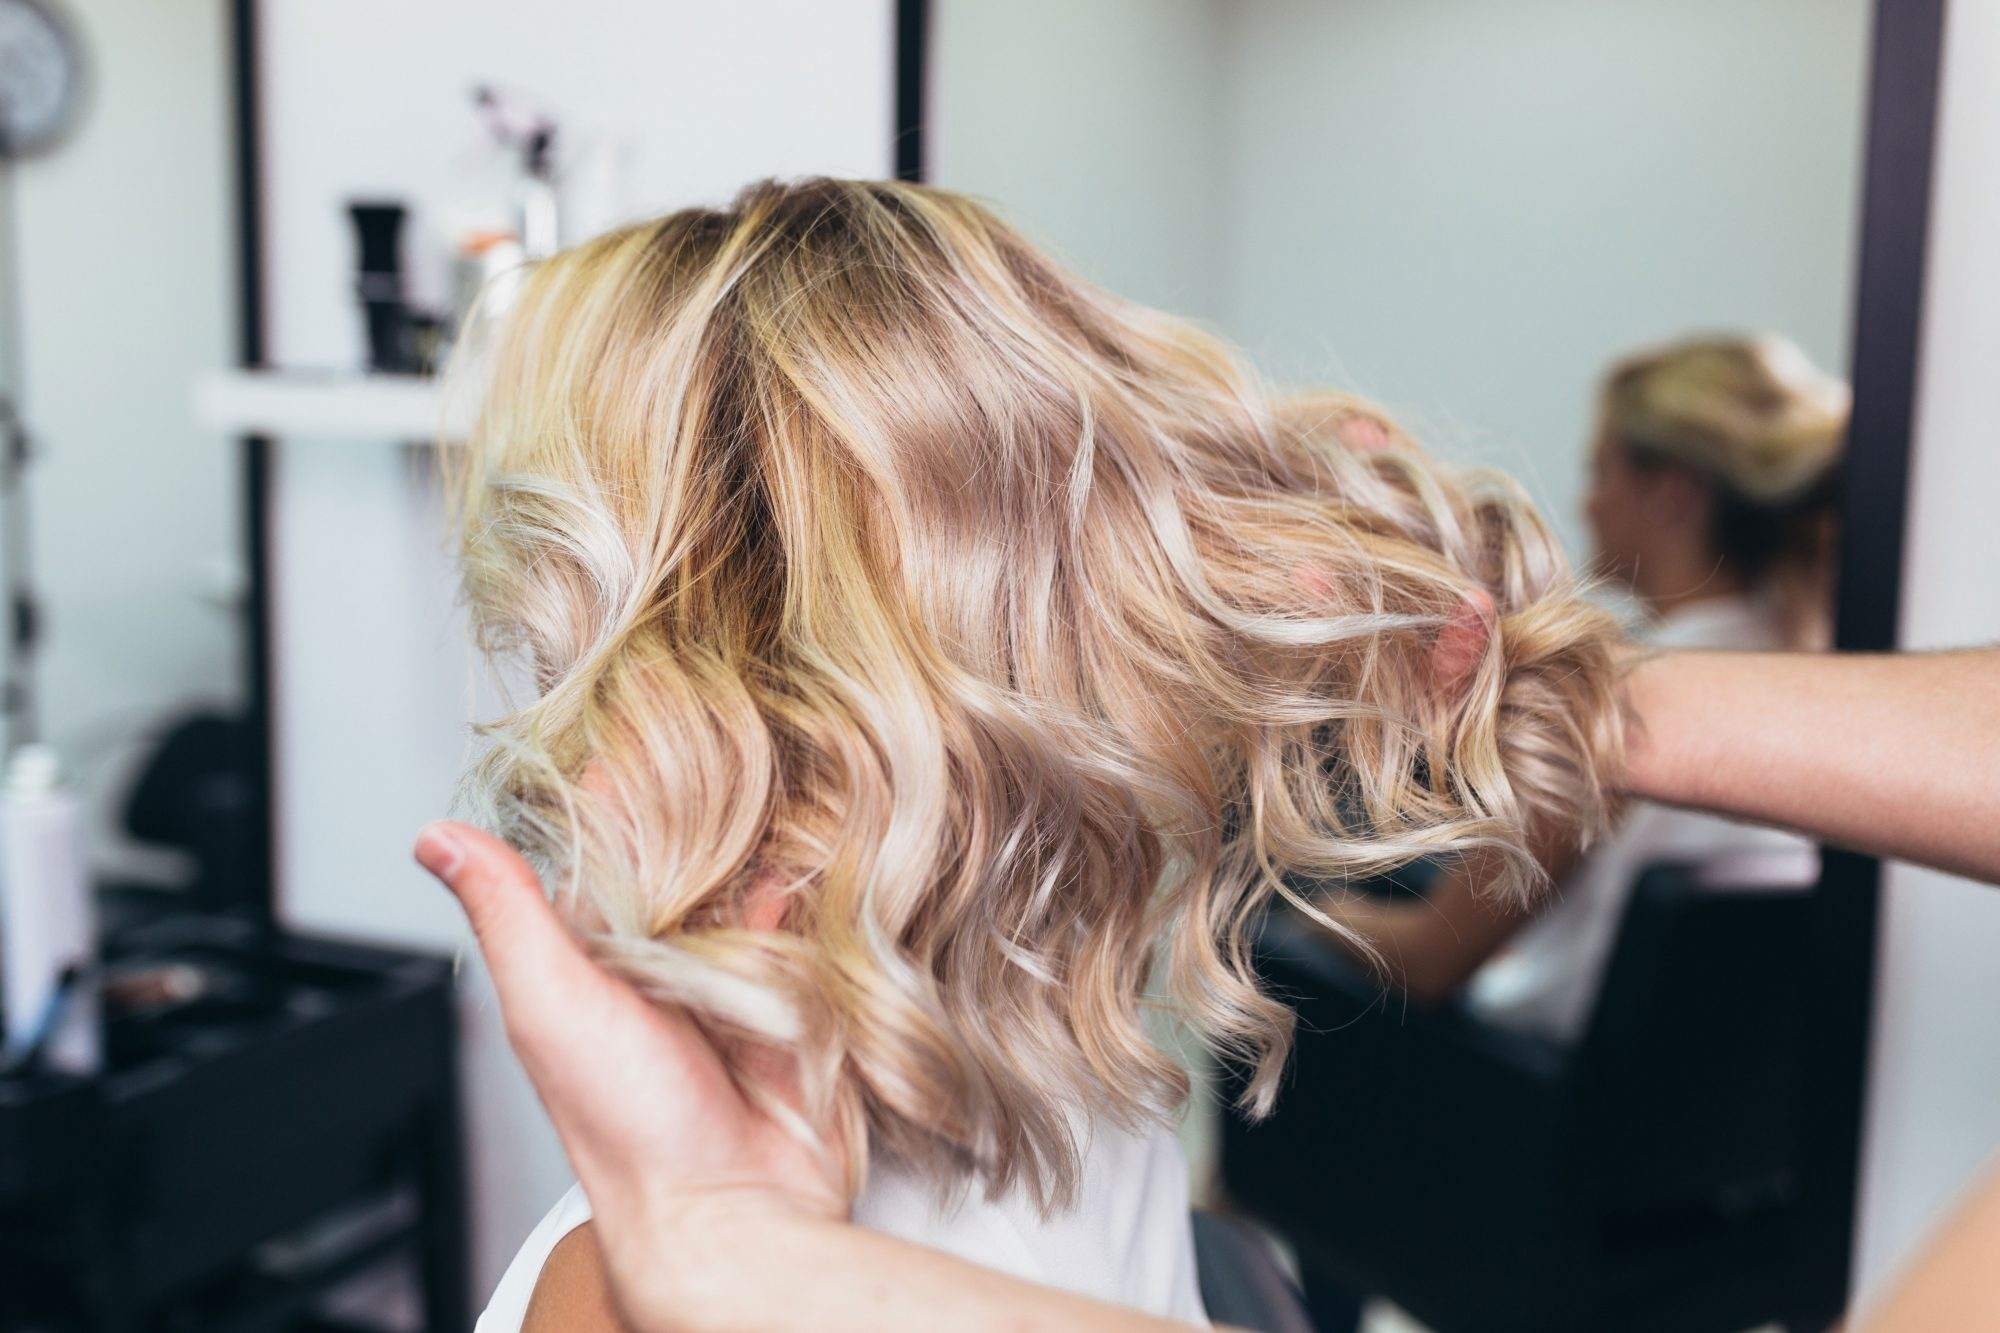 Woman With Blonde Highlights and Waves at The Salon